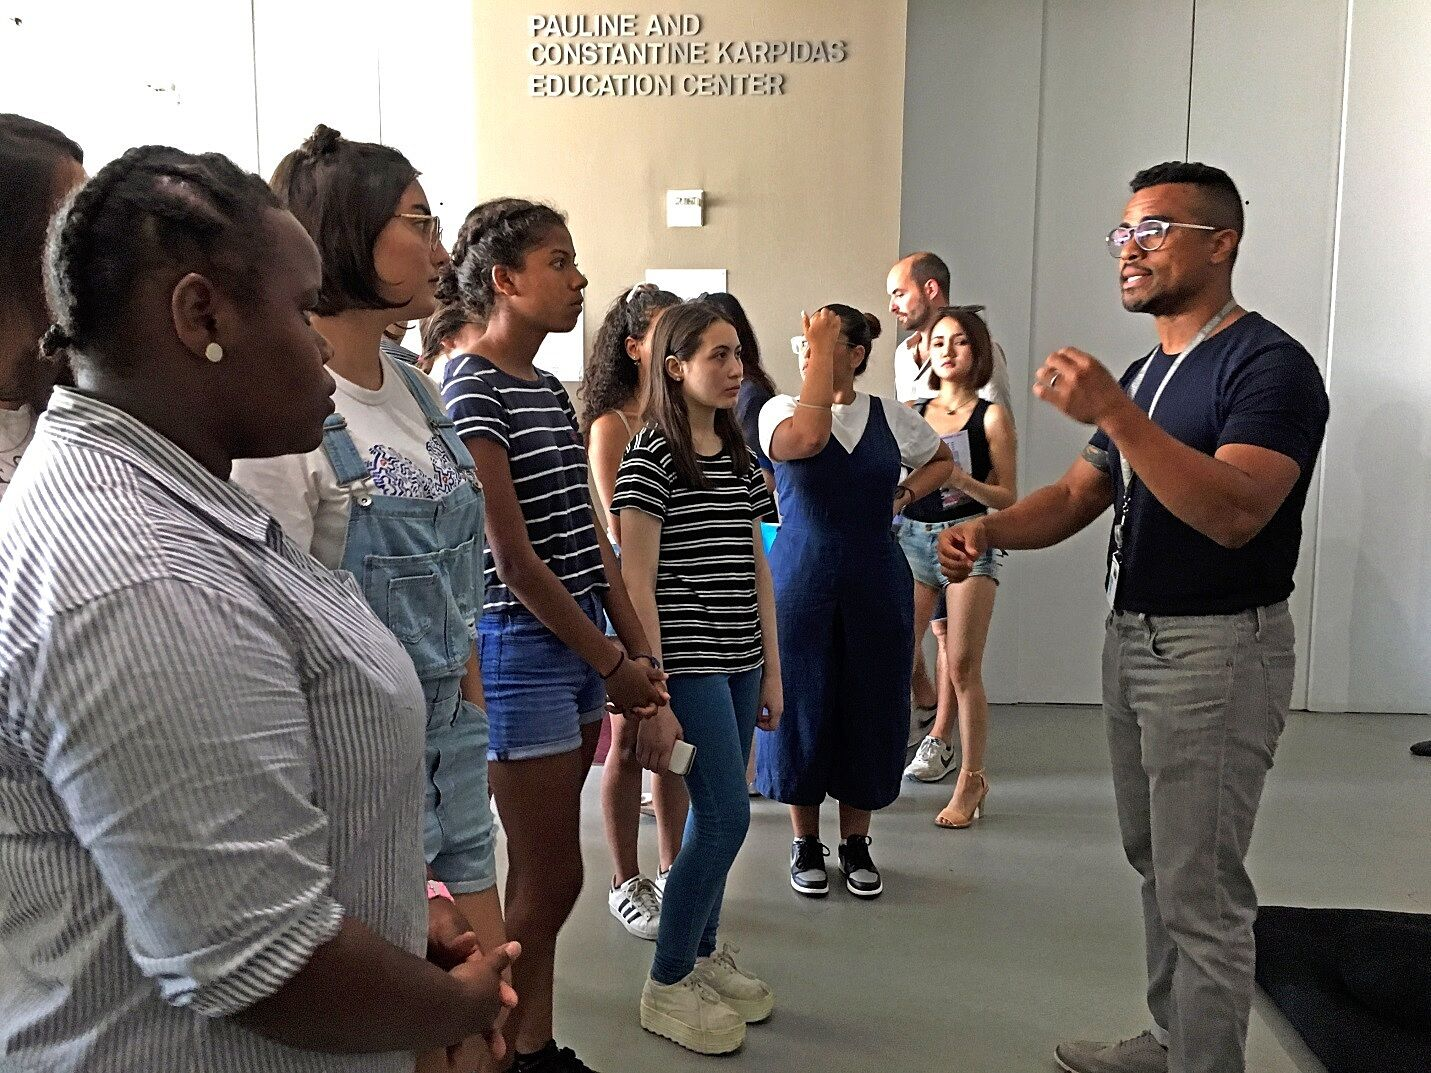 man explaining the museum exhibit to group of students